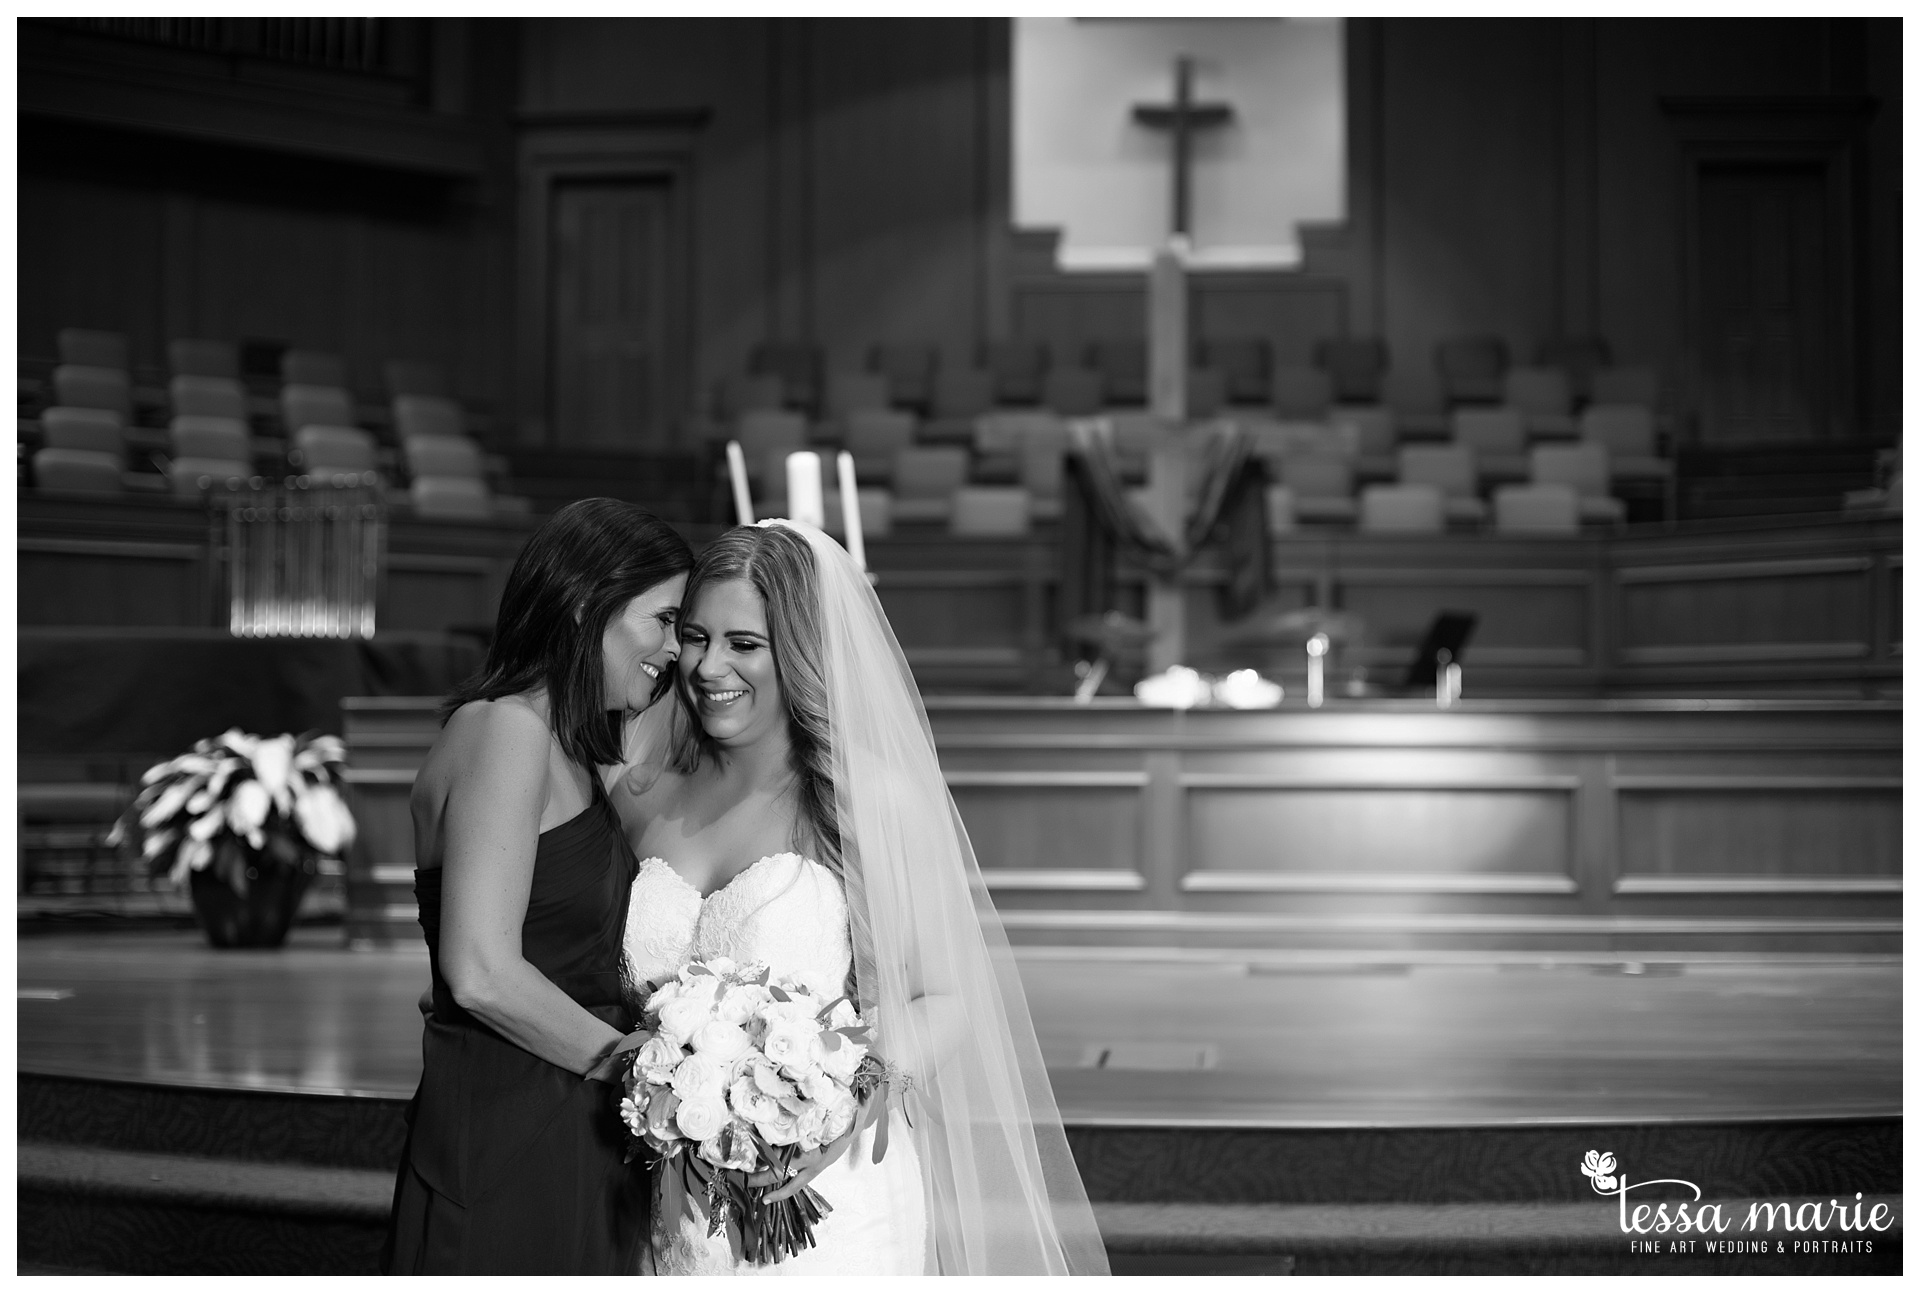 tessa_marie_weddings_legacy_story_focused_wedding_pictures_atlanta_wedding_photographer_0125